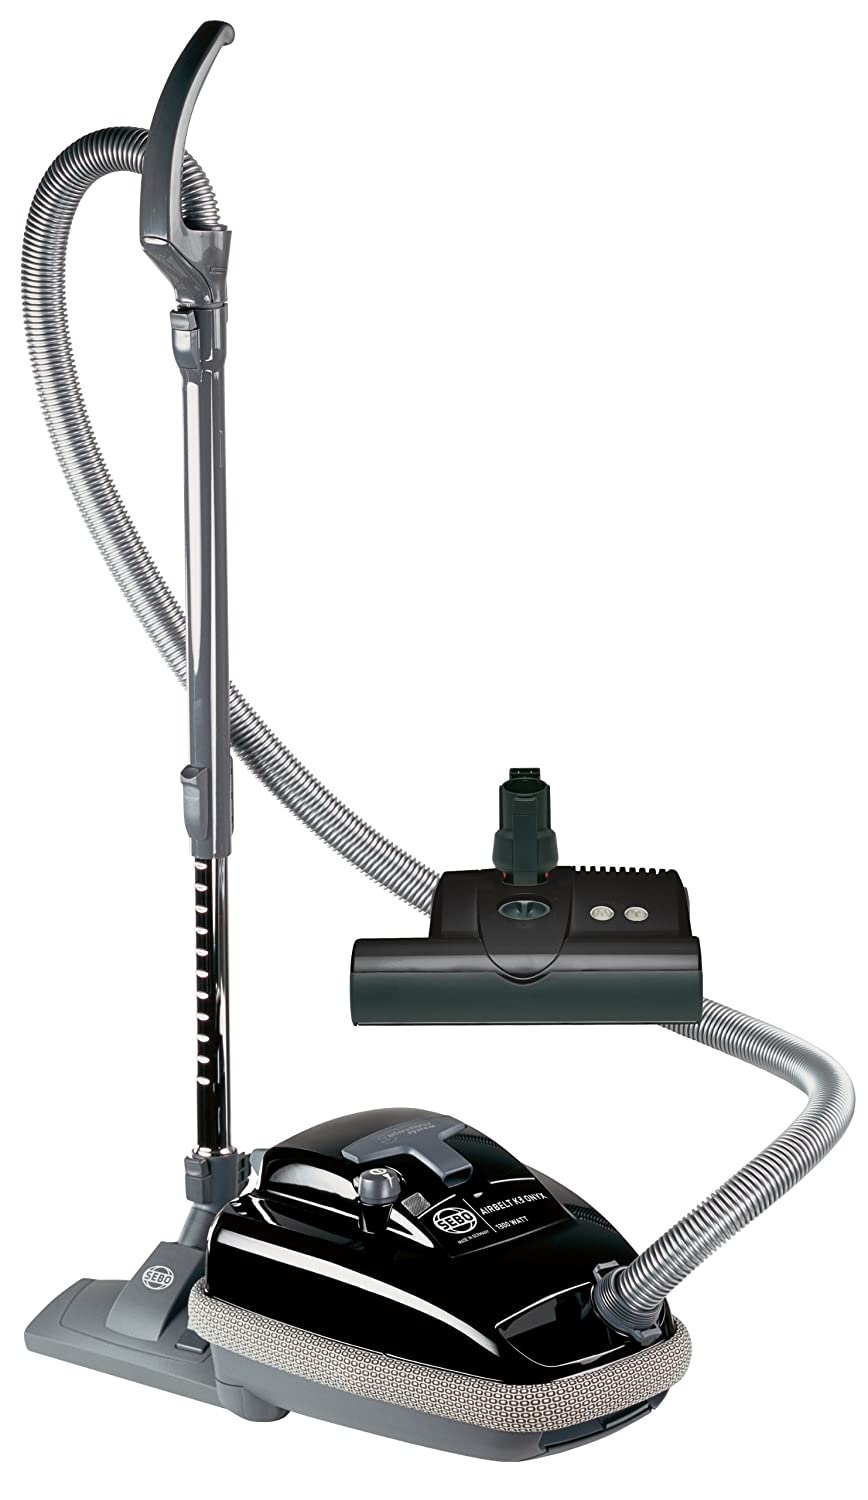 Sebo vacuum cleaners at bed bath and beyond - Amazon Com Sebo 9688am Airbelt K3 Canister Vacuum With Et 1 Powerhead And Parquet Brush Black Corded Sebo Vacuum Bags